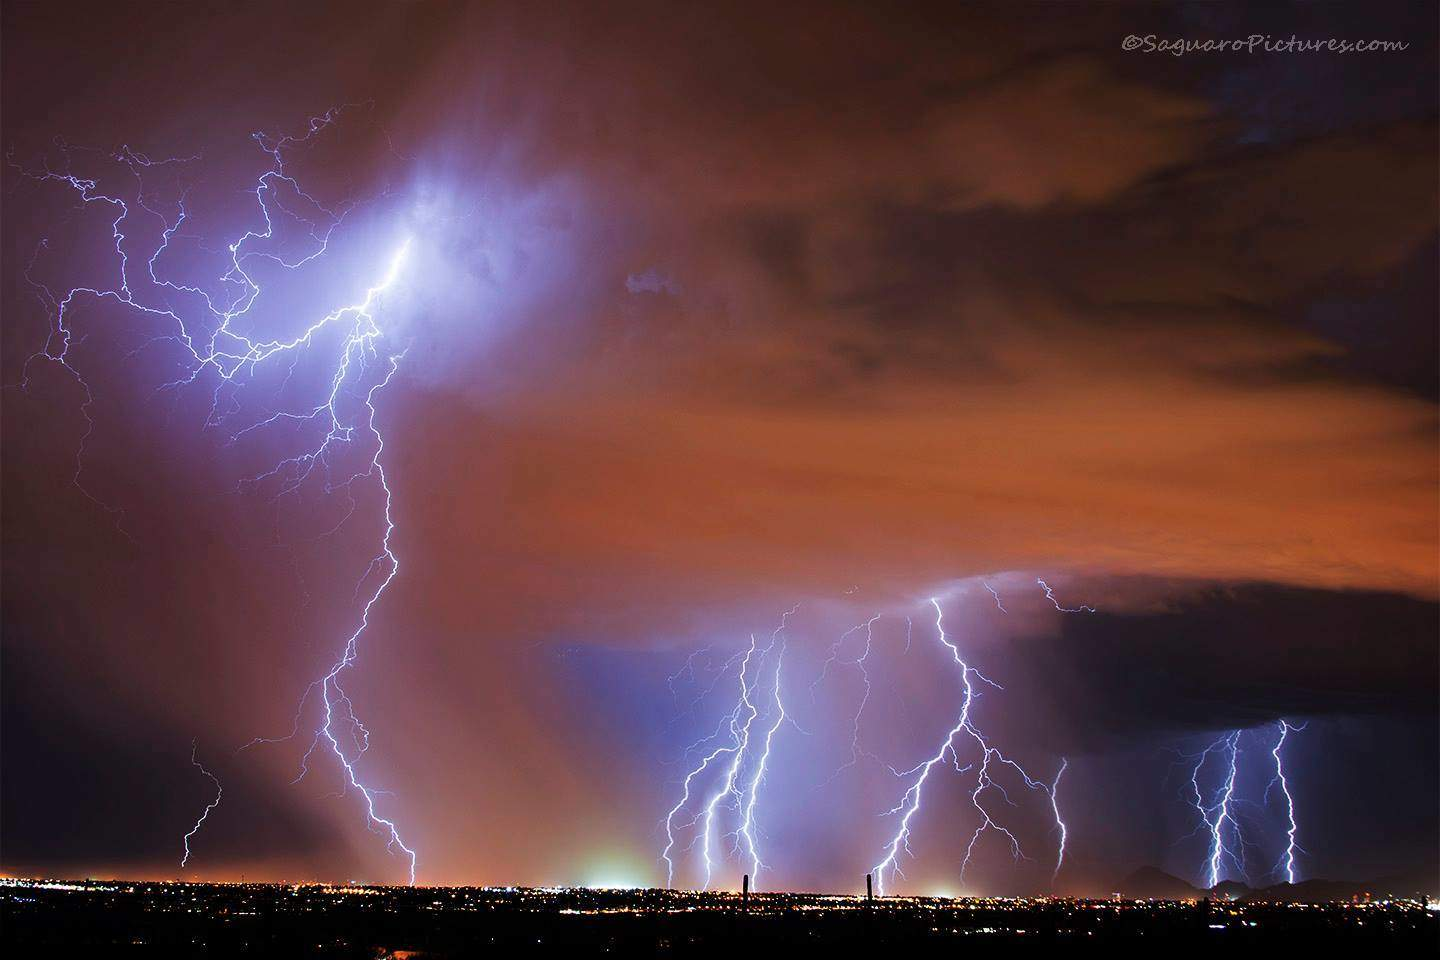 The last big storm of the year in Southern Arizona - and what a night it was. We all thought the storm season was over when out of nowhere this storm hit Tucson on the night of September 12, 2014.